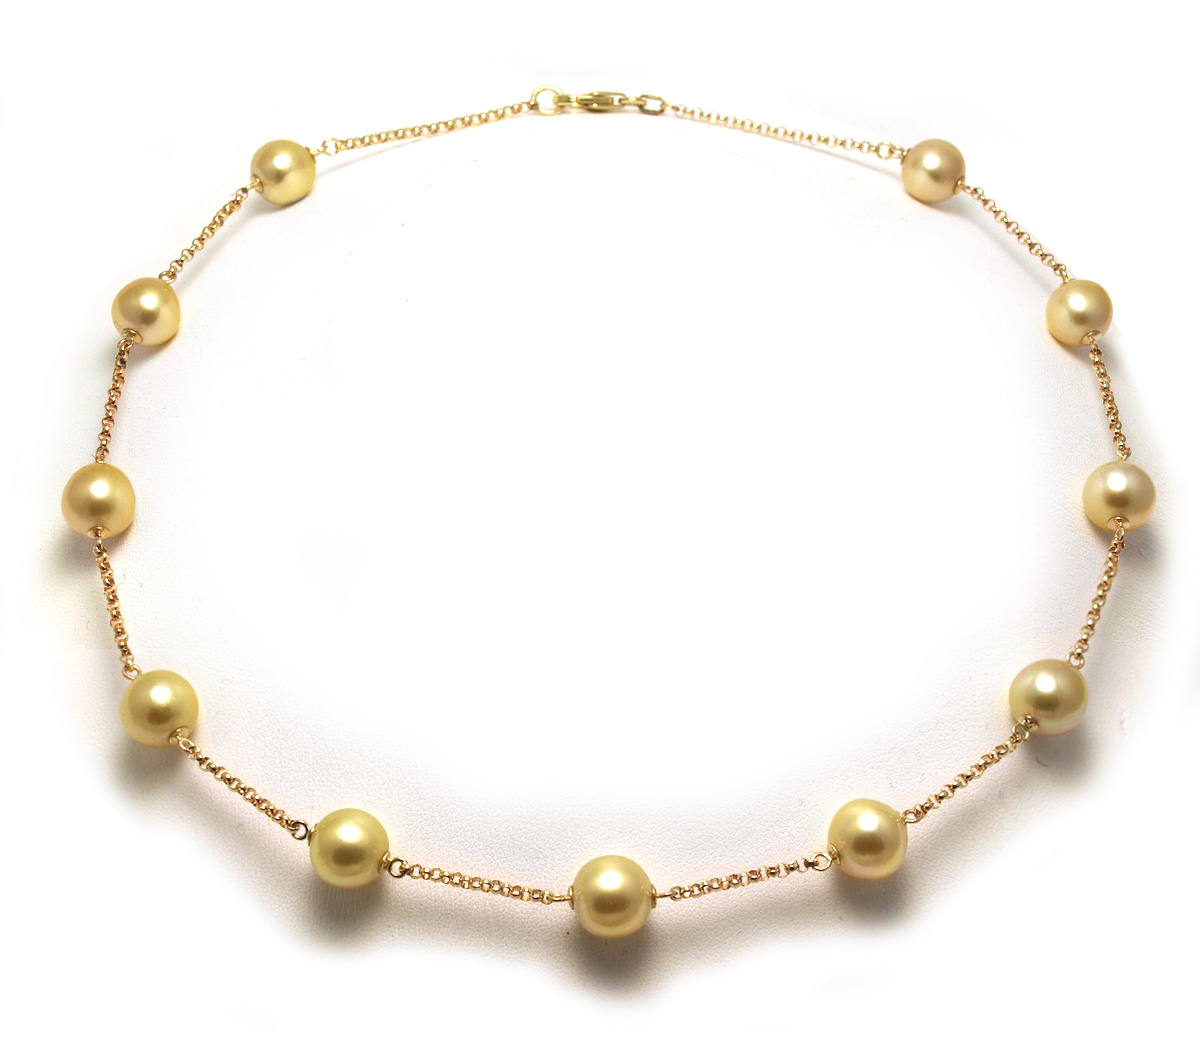 a494d5f4dfe30 Tincup Golden South Sea Pearl Necklace with 14 karat Gold Chain